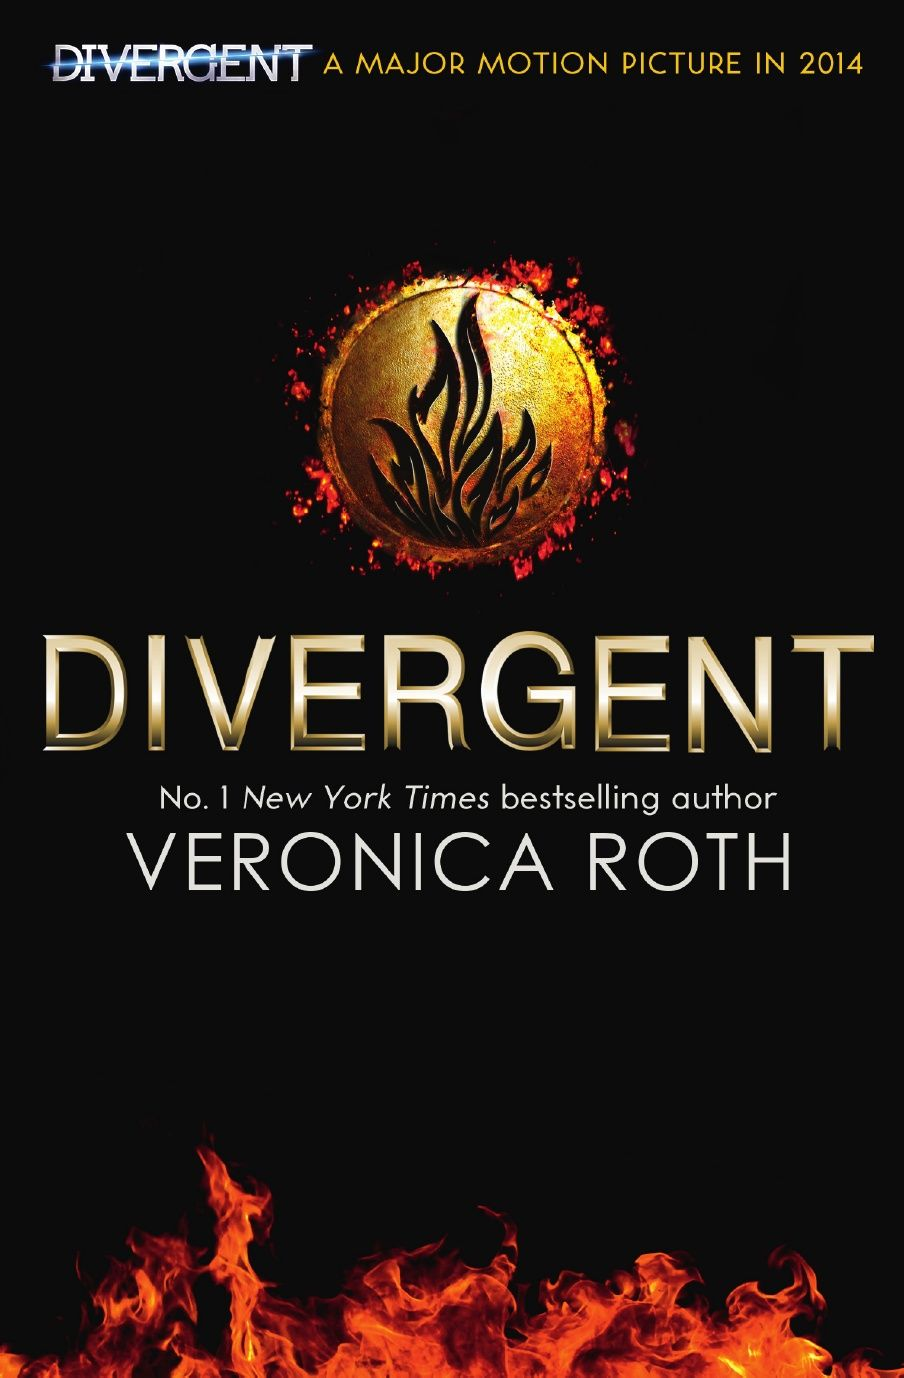 Divergent by veronica roth 100 page extract veronica